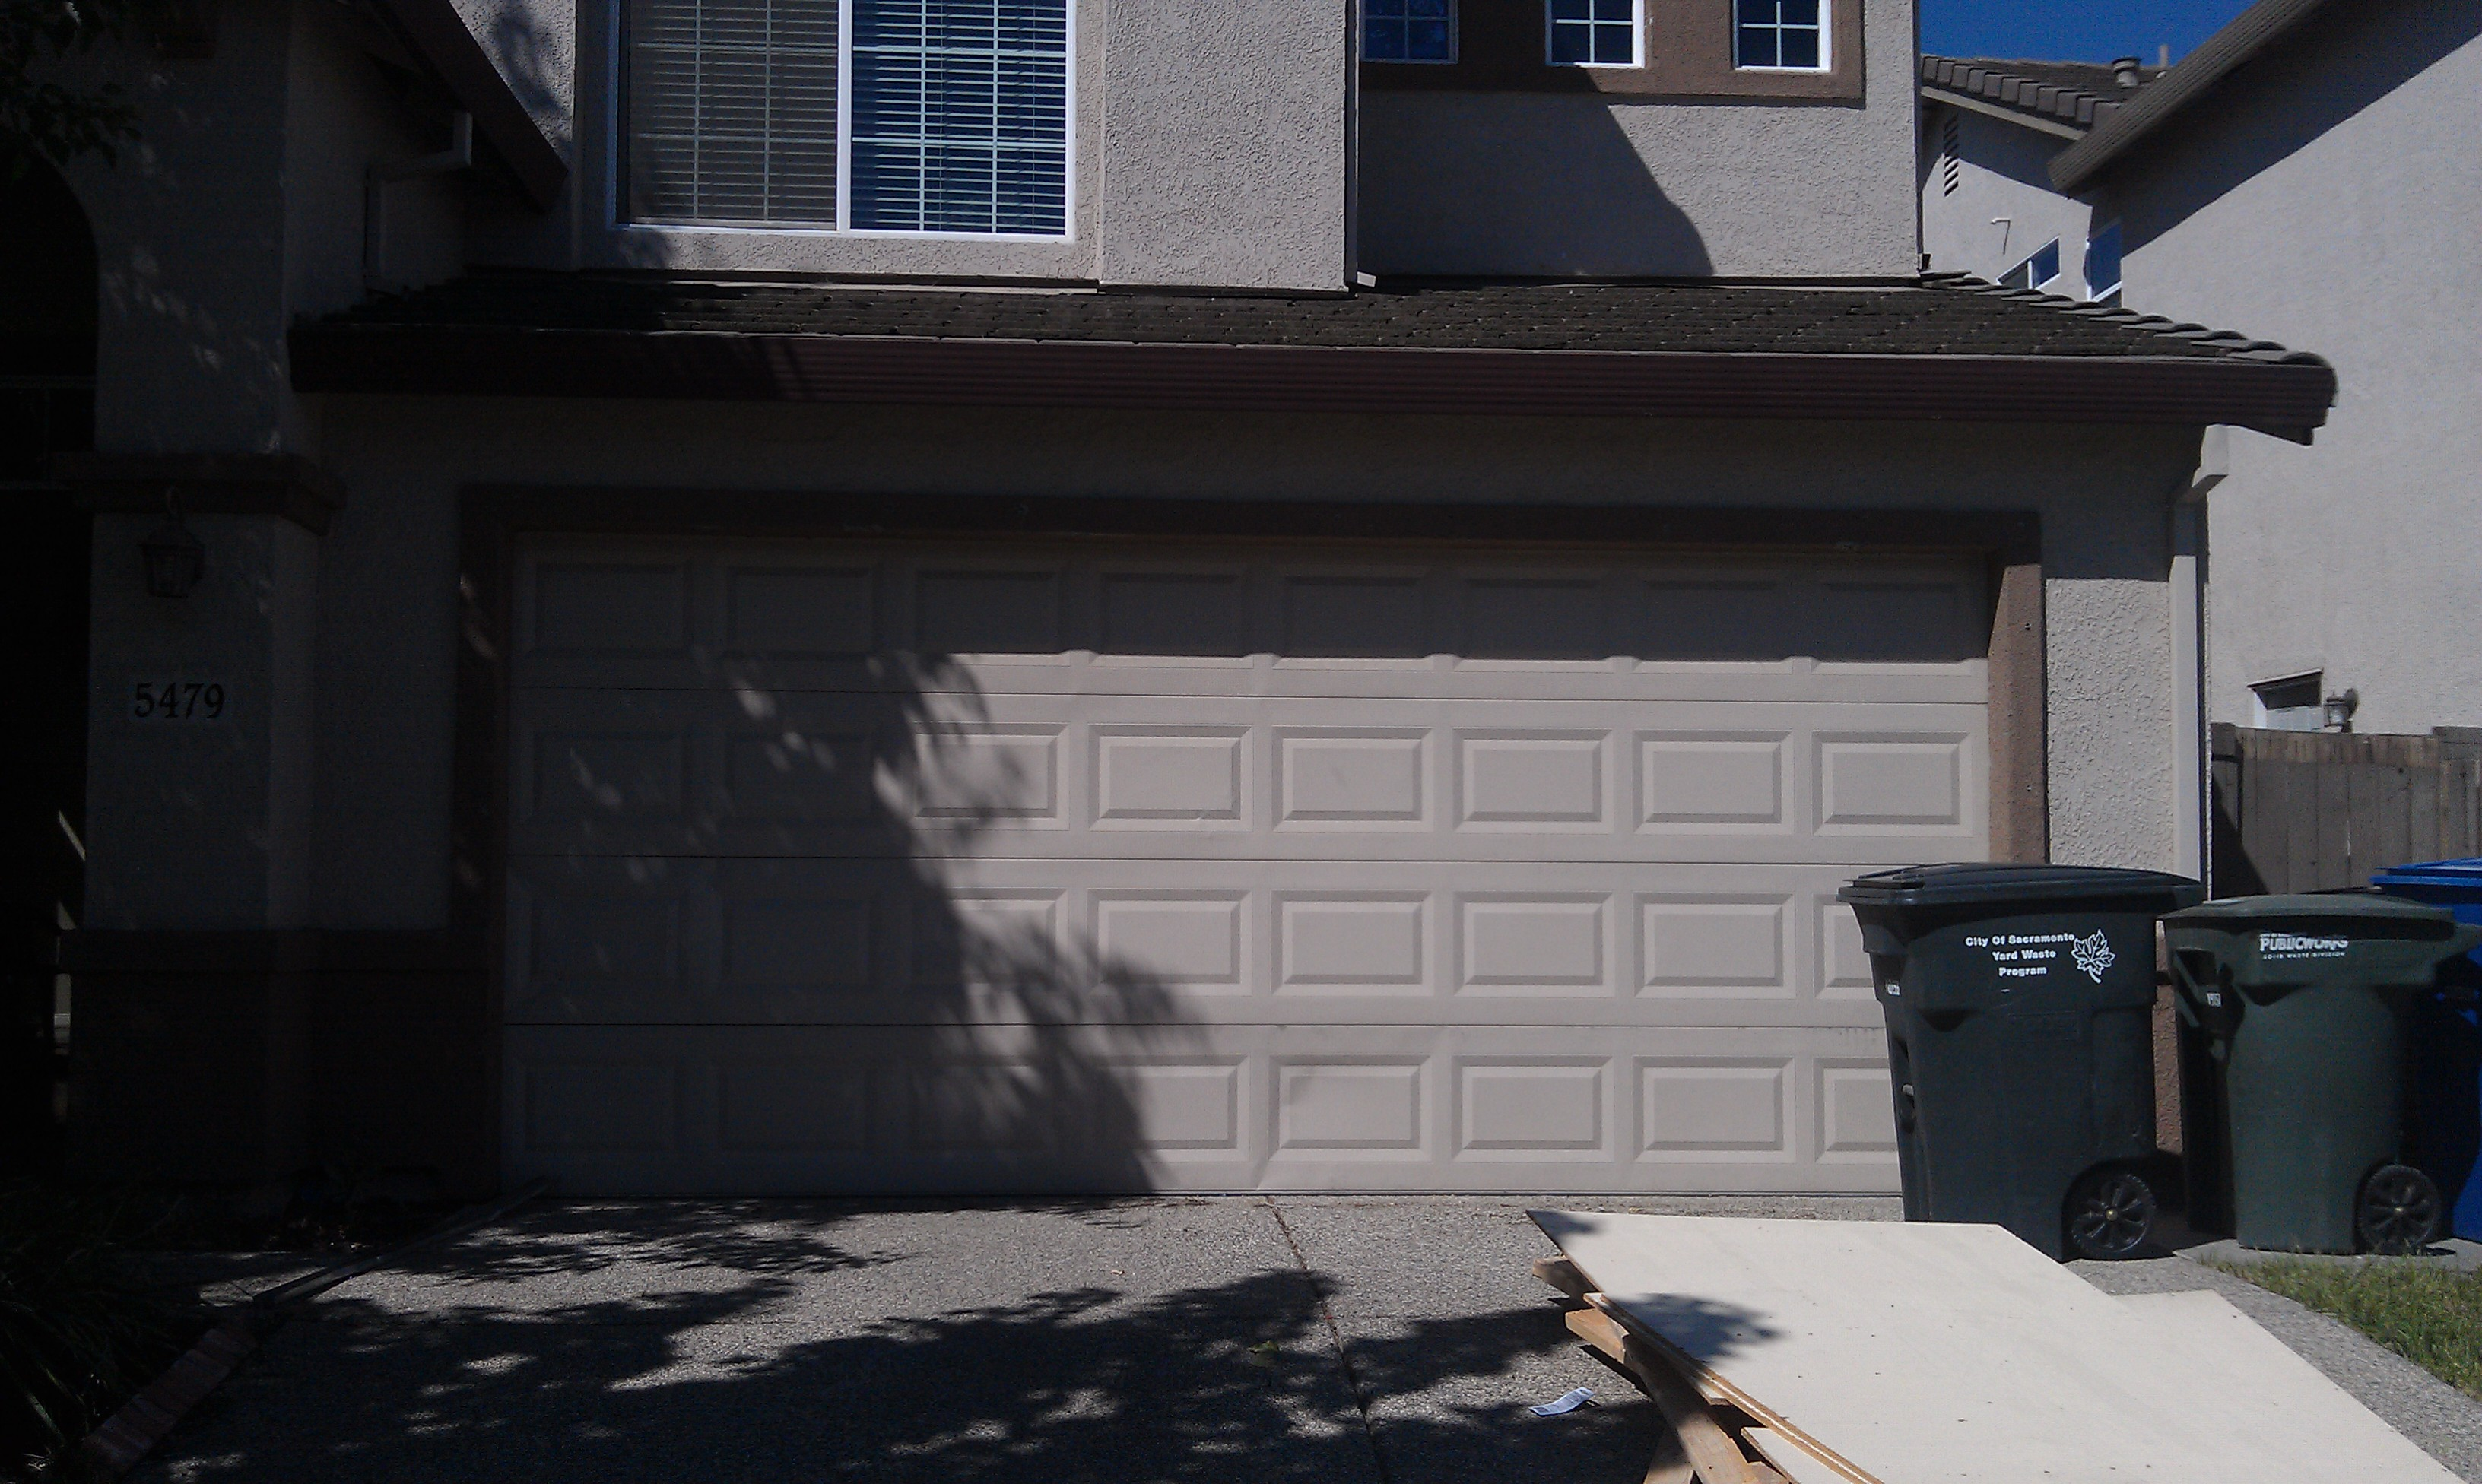 Garage door cowboys chicago in chicago il 60654 for Chicago garage door repair chicago il